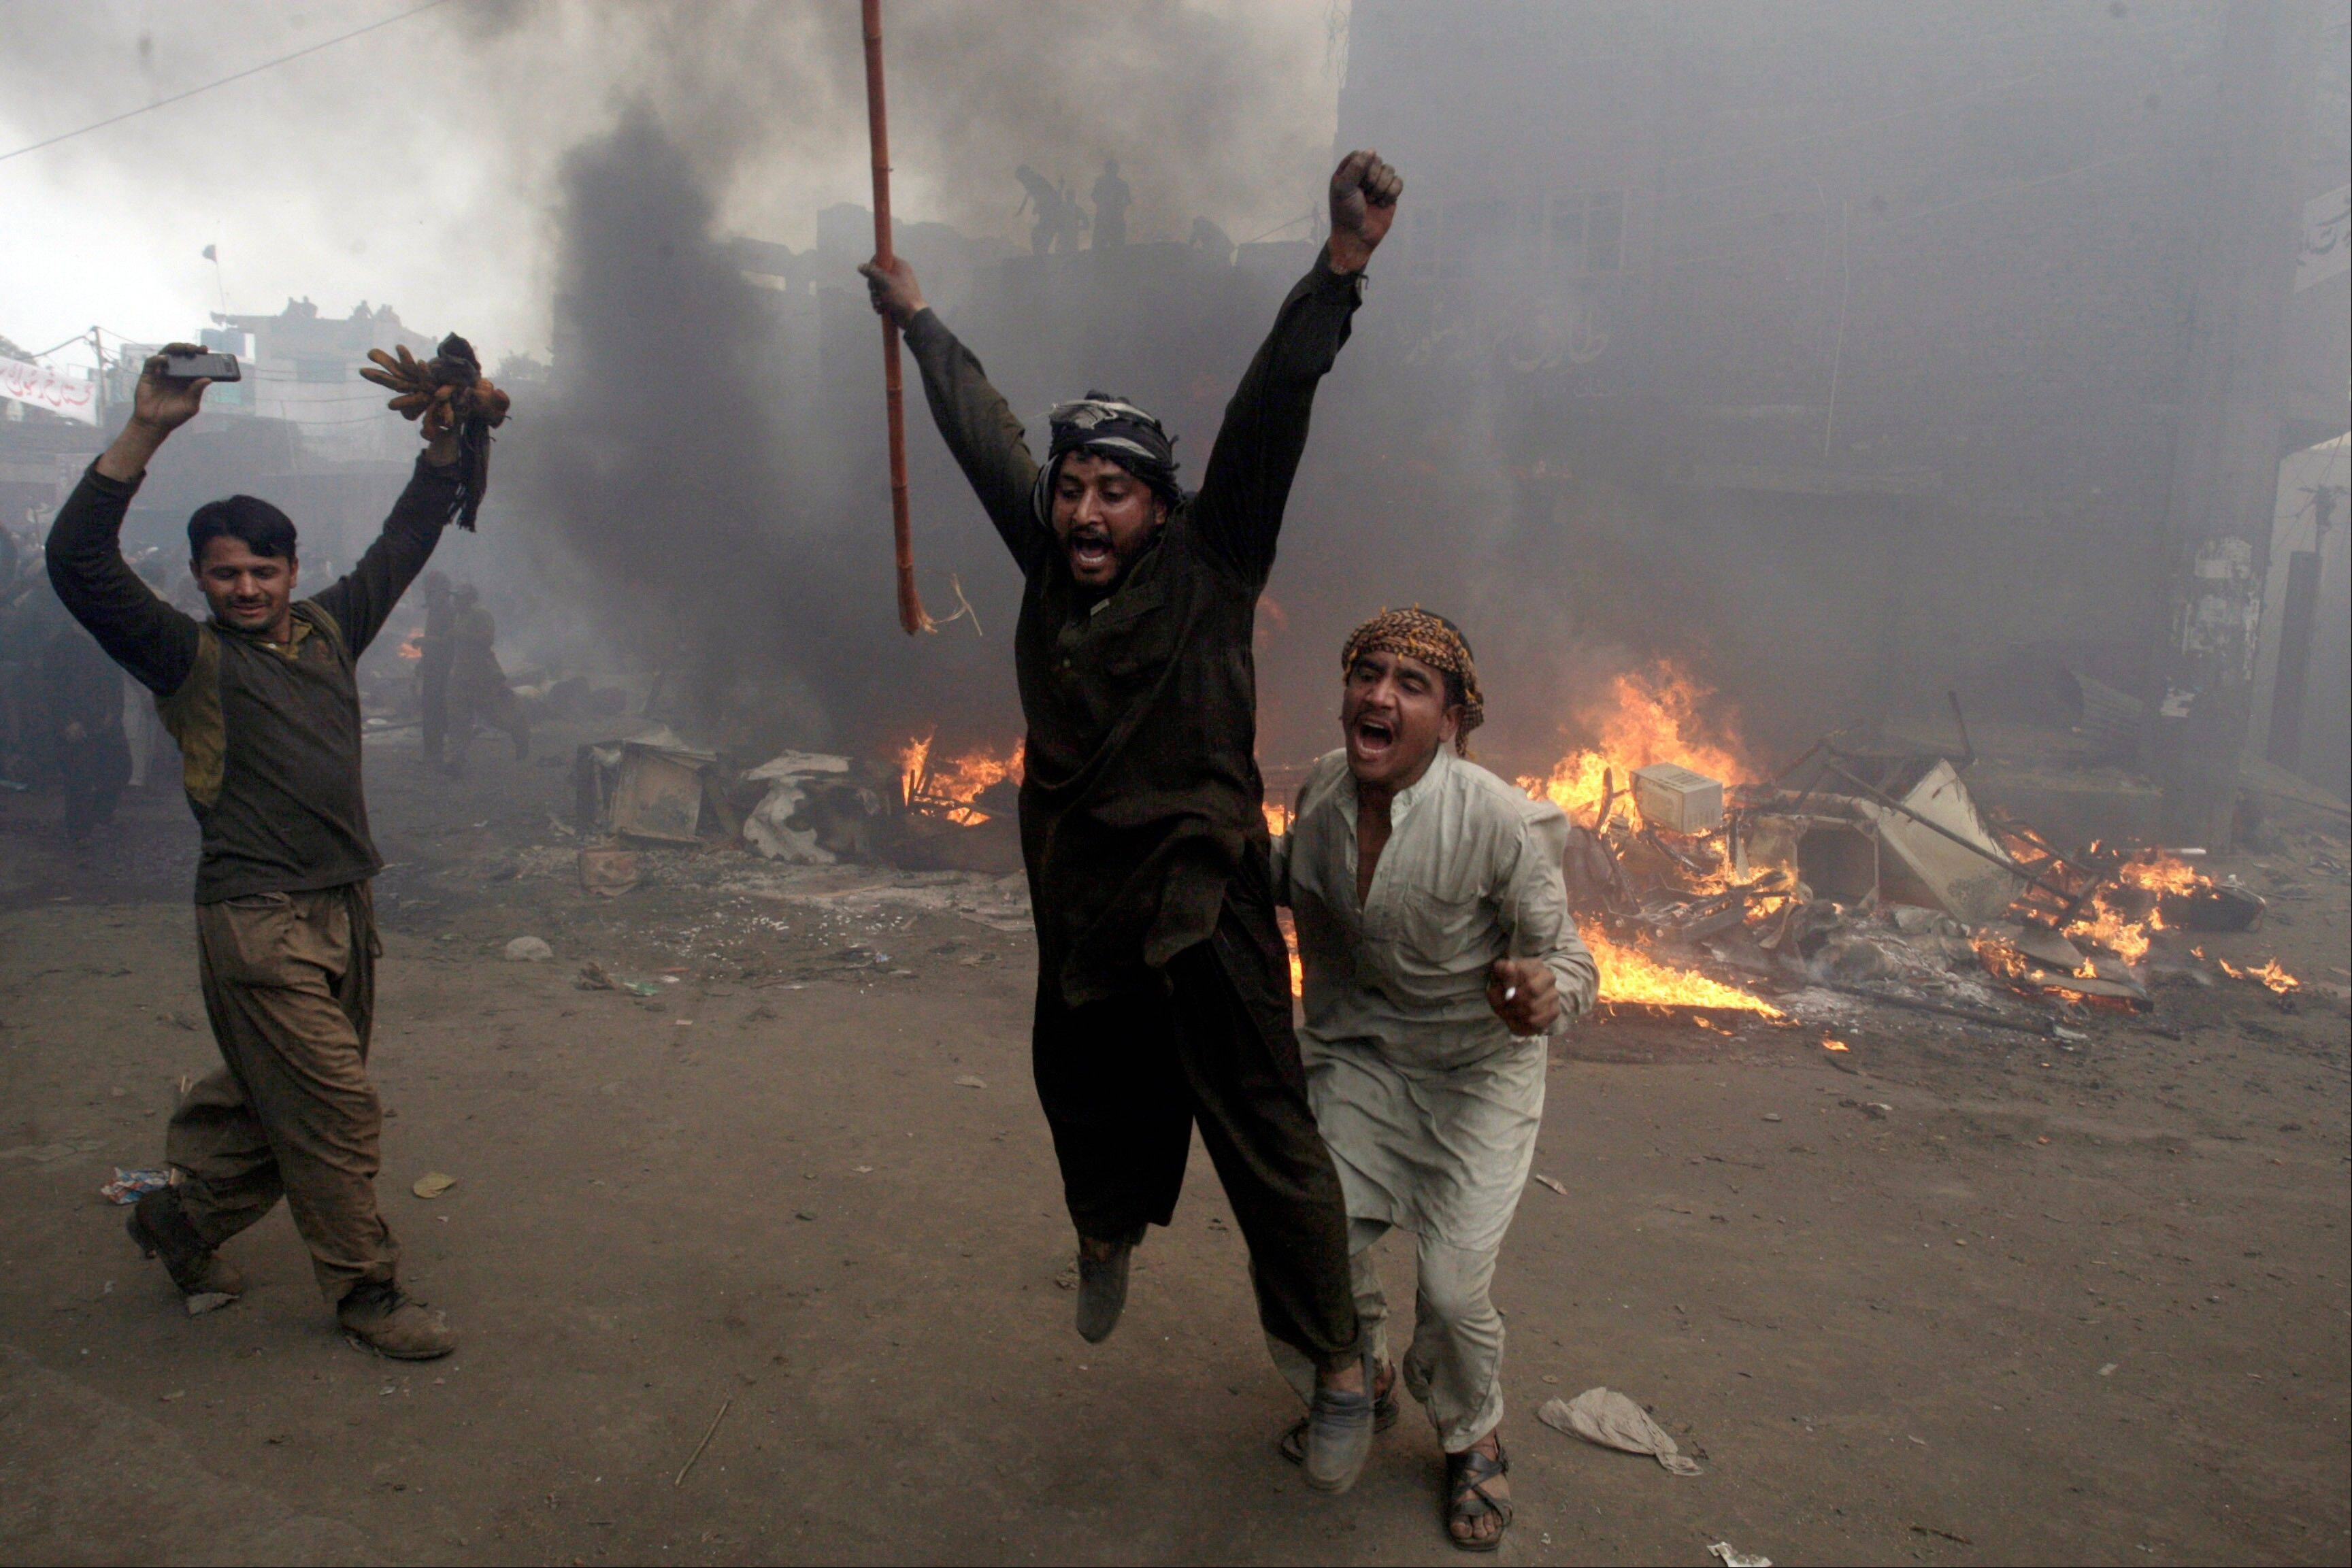 Pakistani men, part of an angry mob, run Saturday after burning belongings of Christian families, in Lahore, Pakistan.